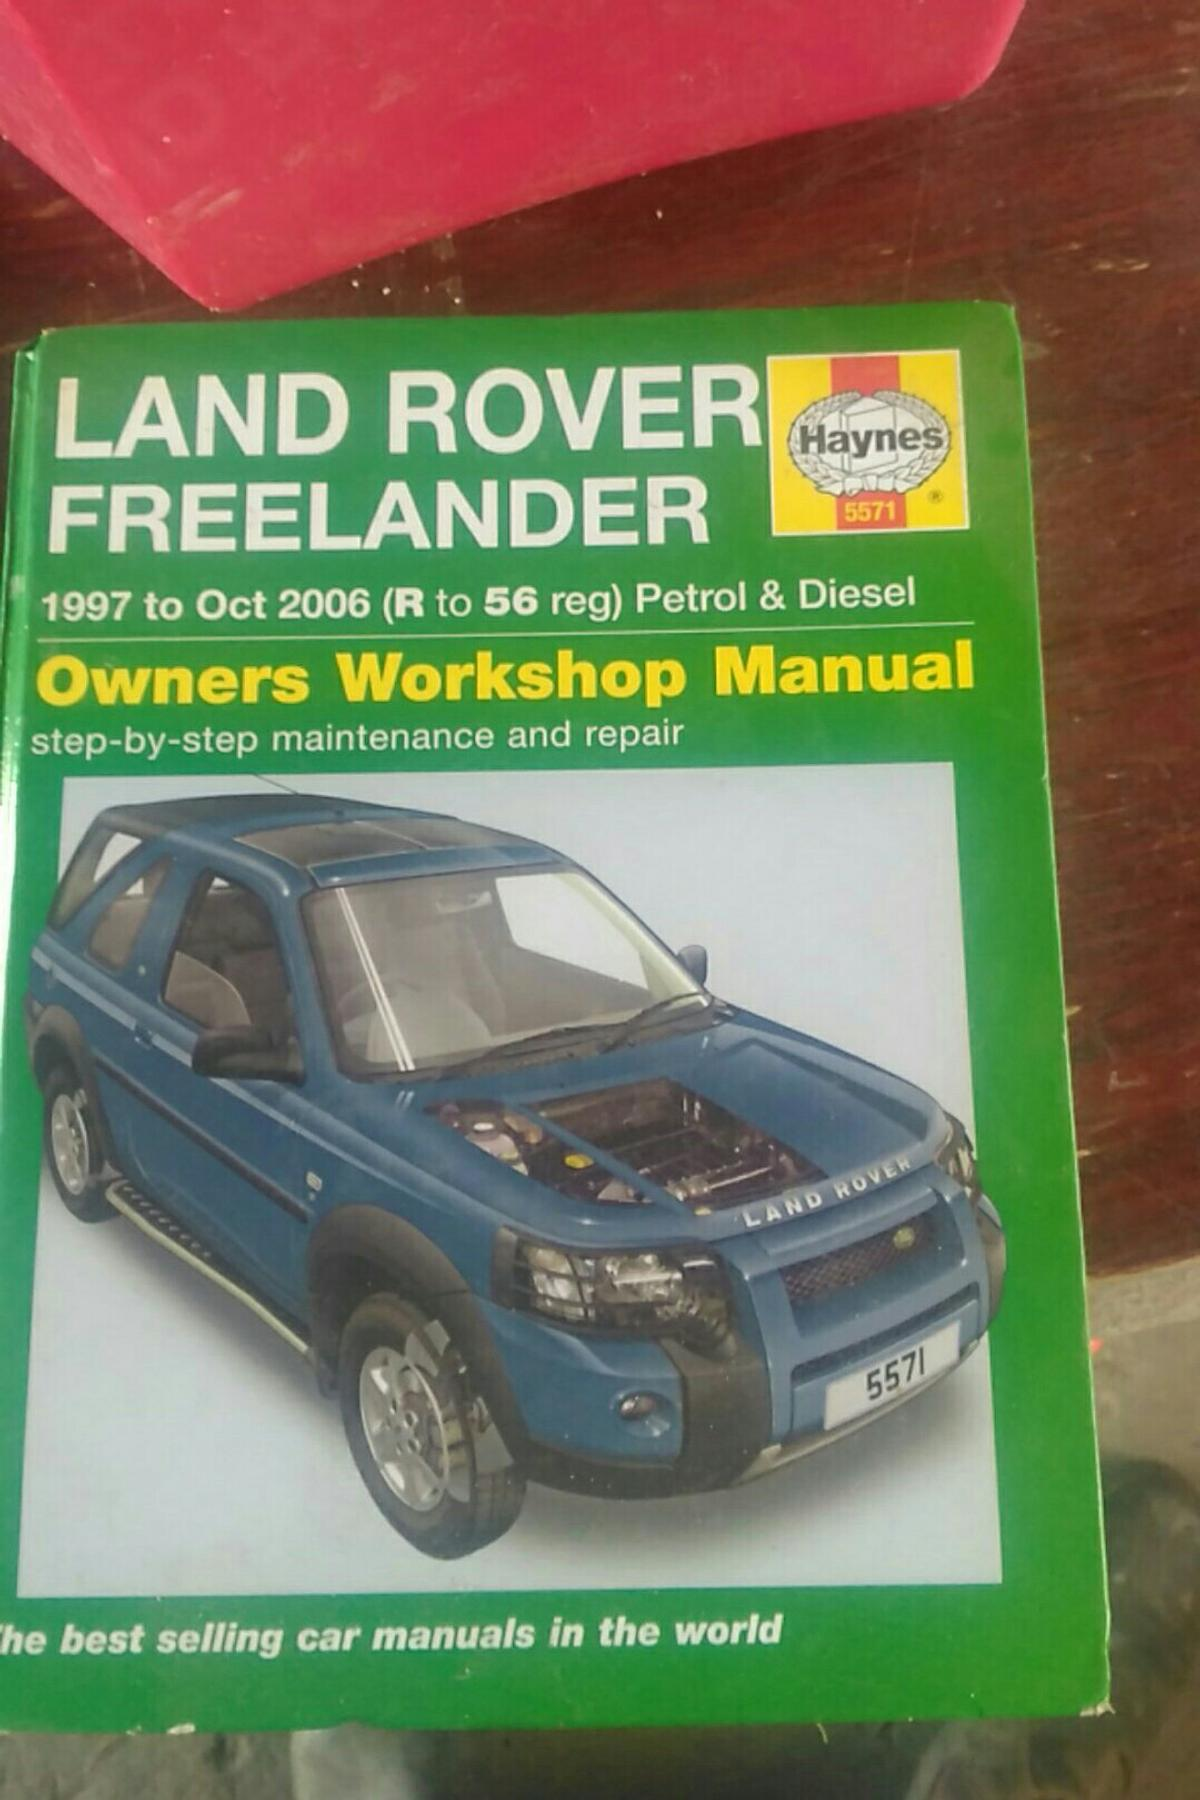 Land Rover Freelander Repair Manual Haynes Manual Workshop Manual 1997 2006 5571 Service Reparaturanleitungen